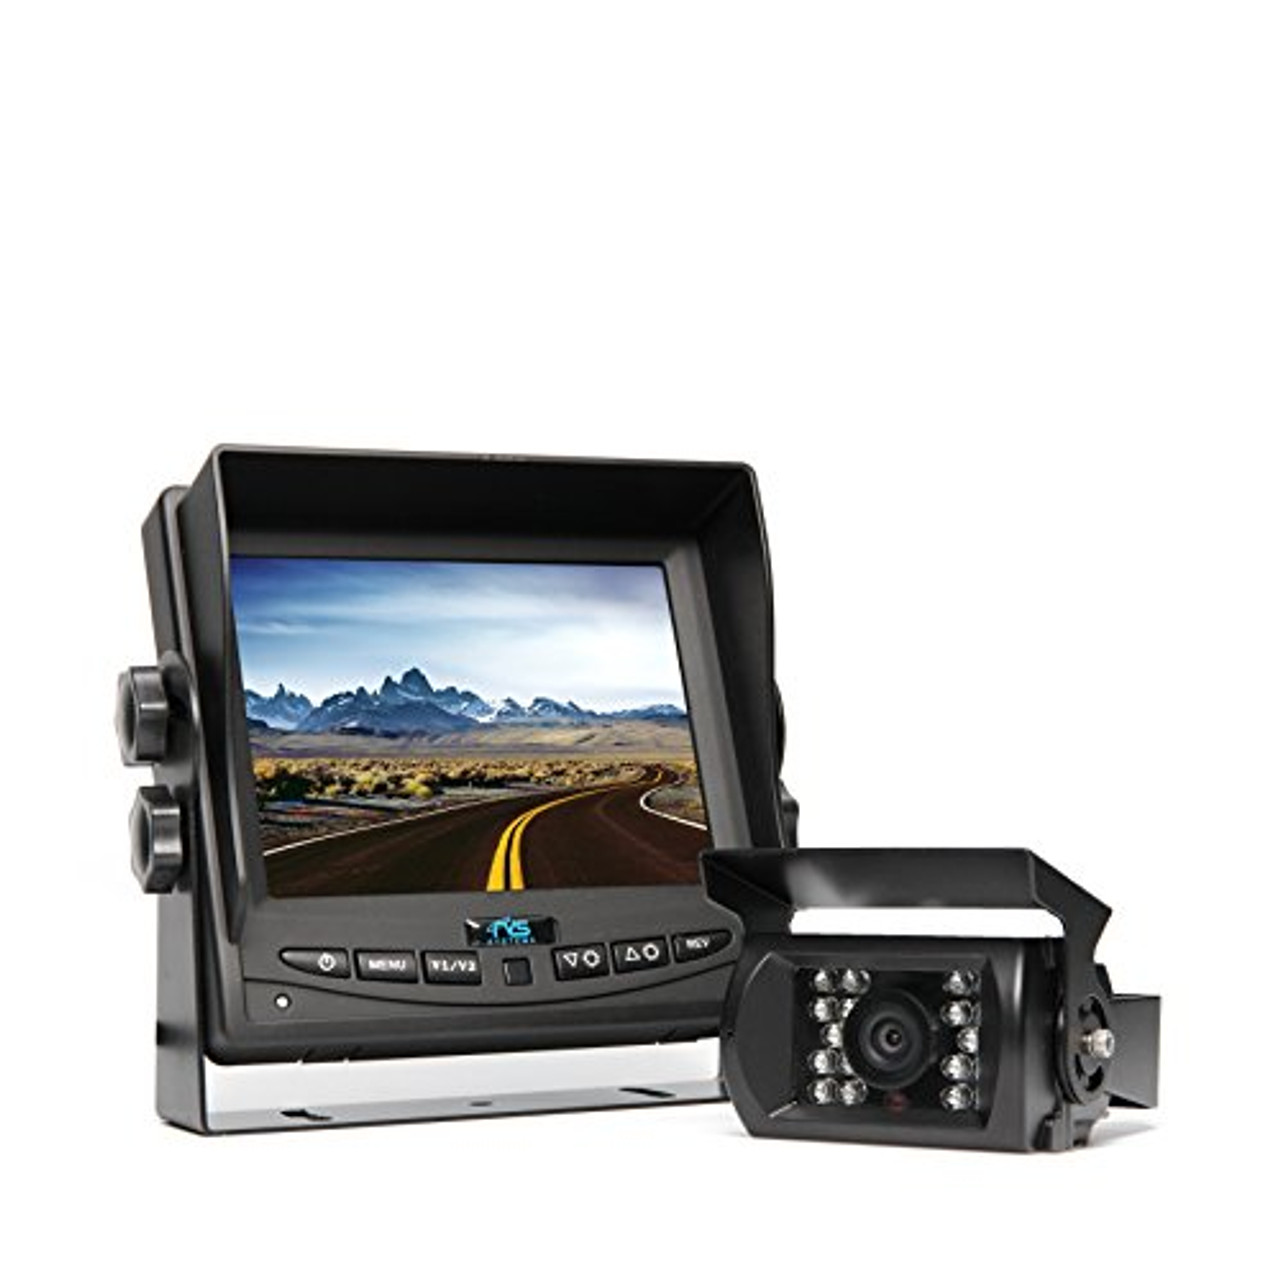 Rear View Camera System - One Camera Setup with 5.6'' Monitor RVS-7706033 | 0927VR6LLWC